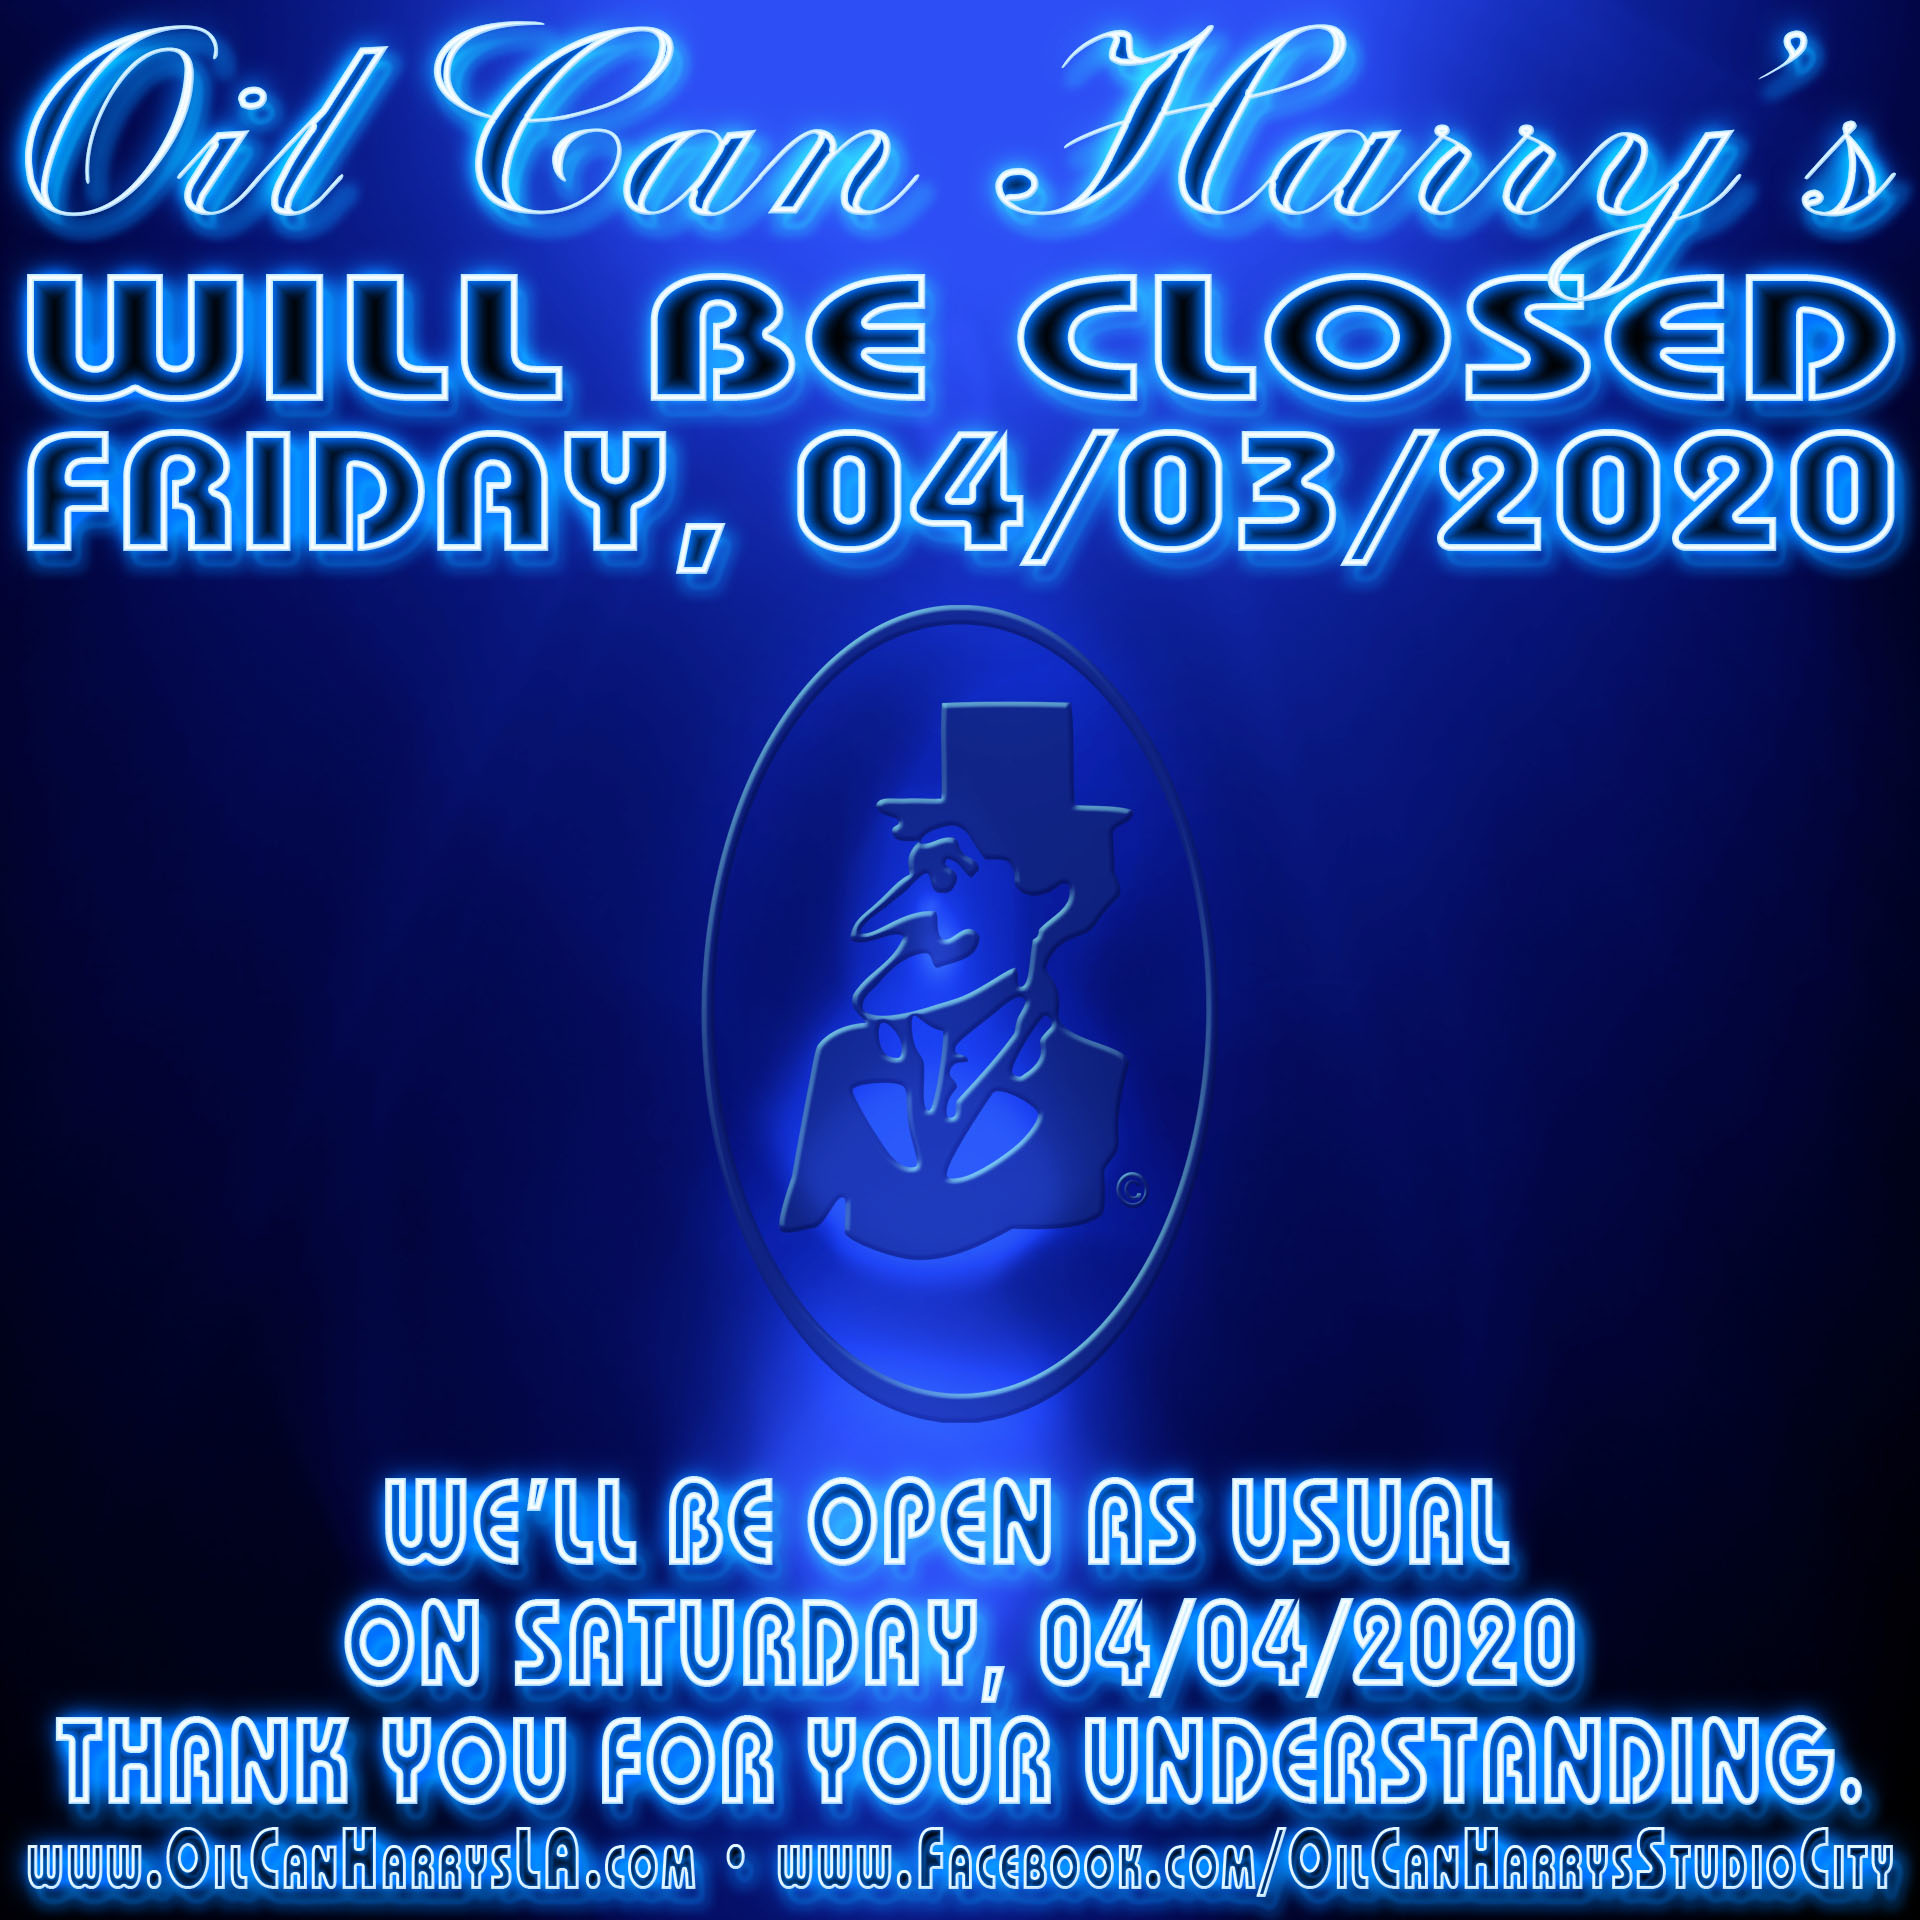 Oil Can Harry's will be closed on Friday, 04/03/2020. We'll be open as usual on Saturday, 04/04/2020. Thank you for your understanding.